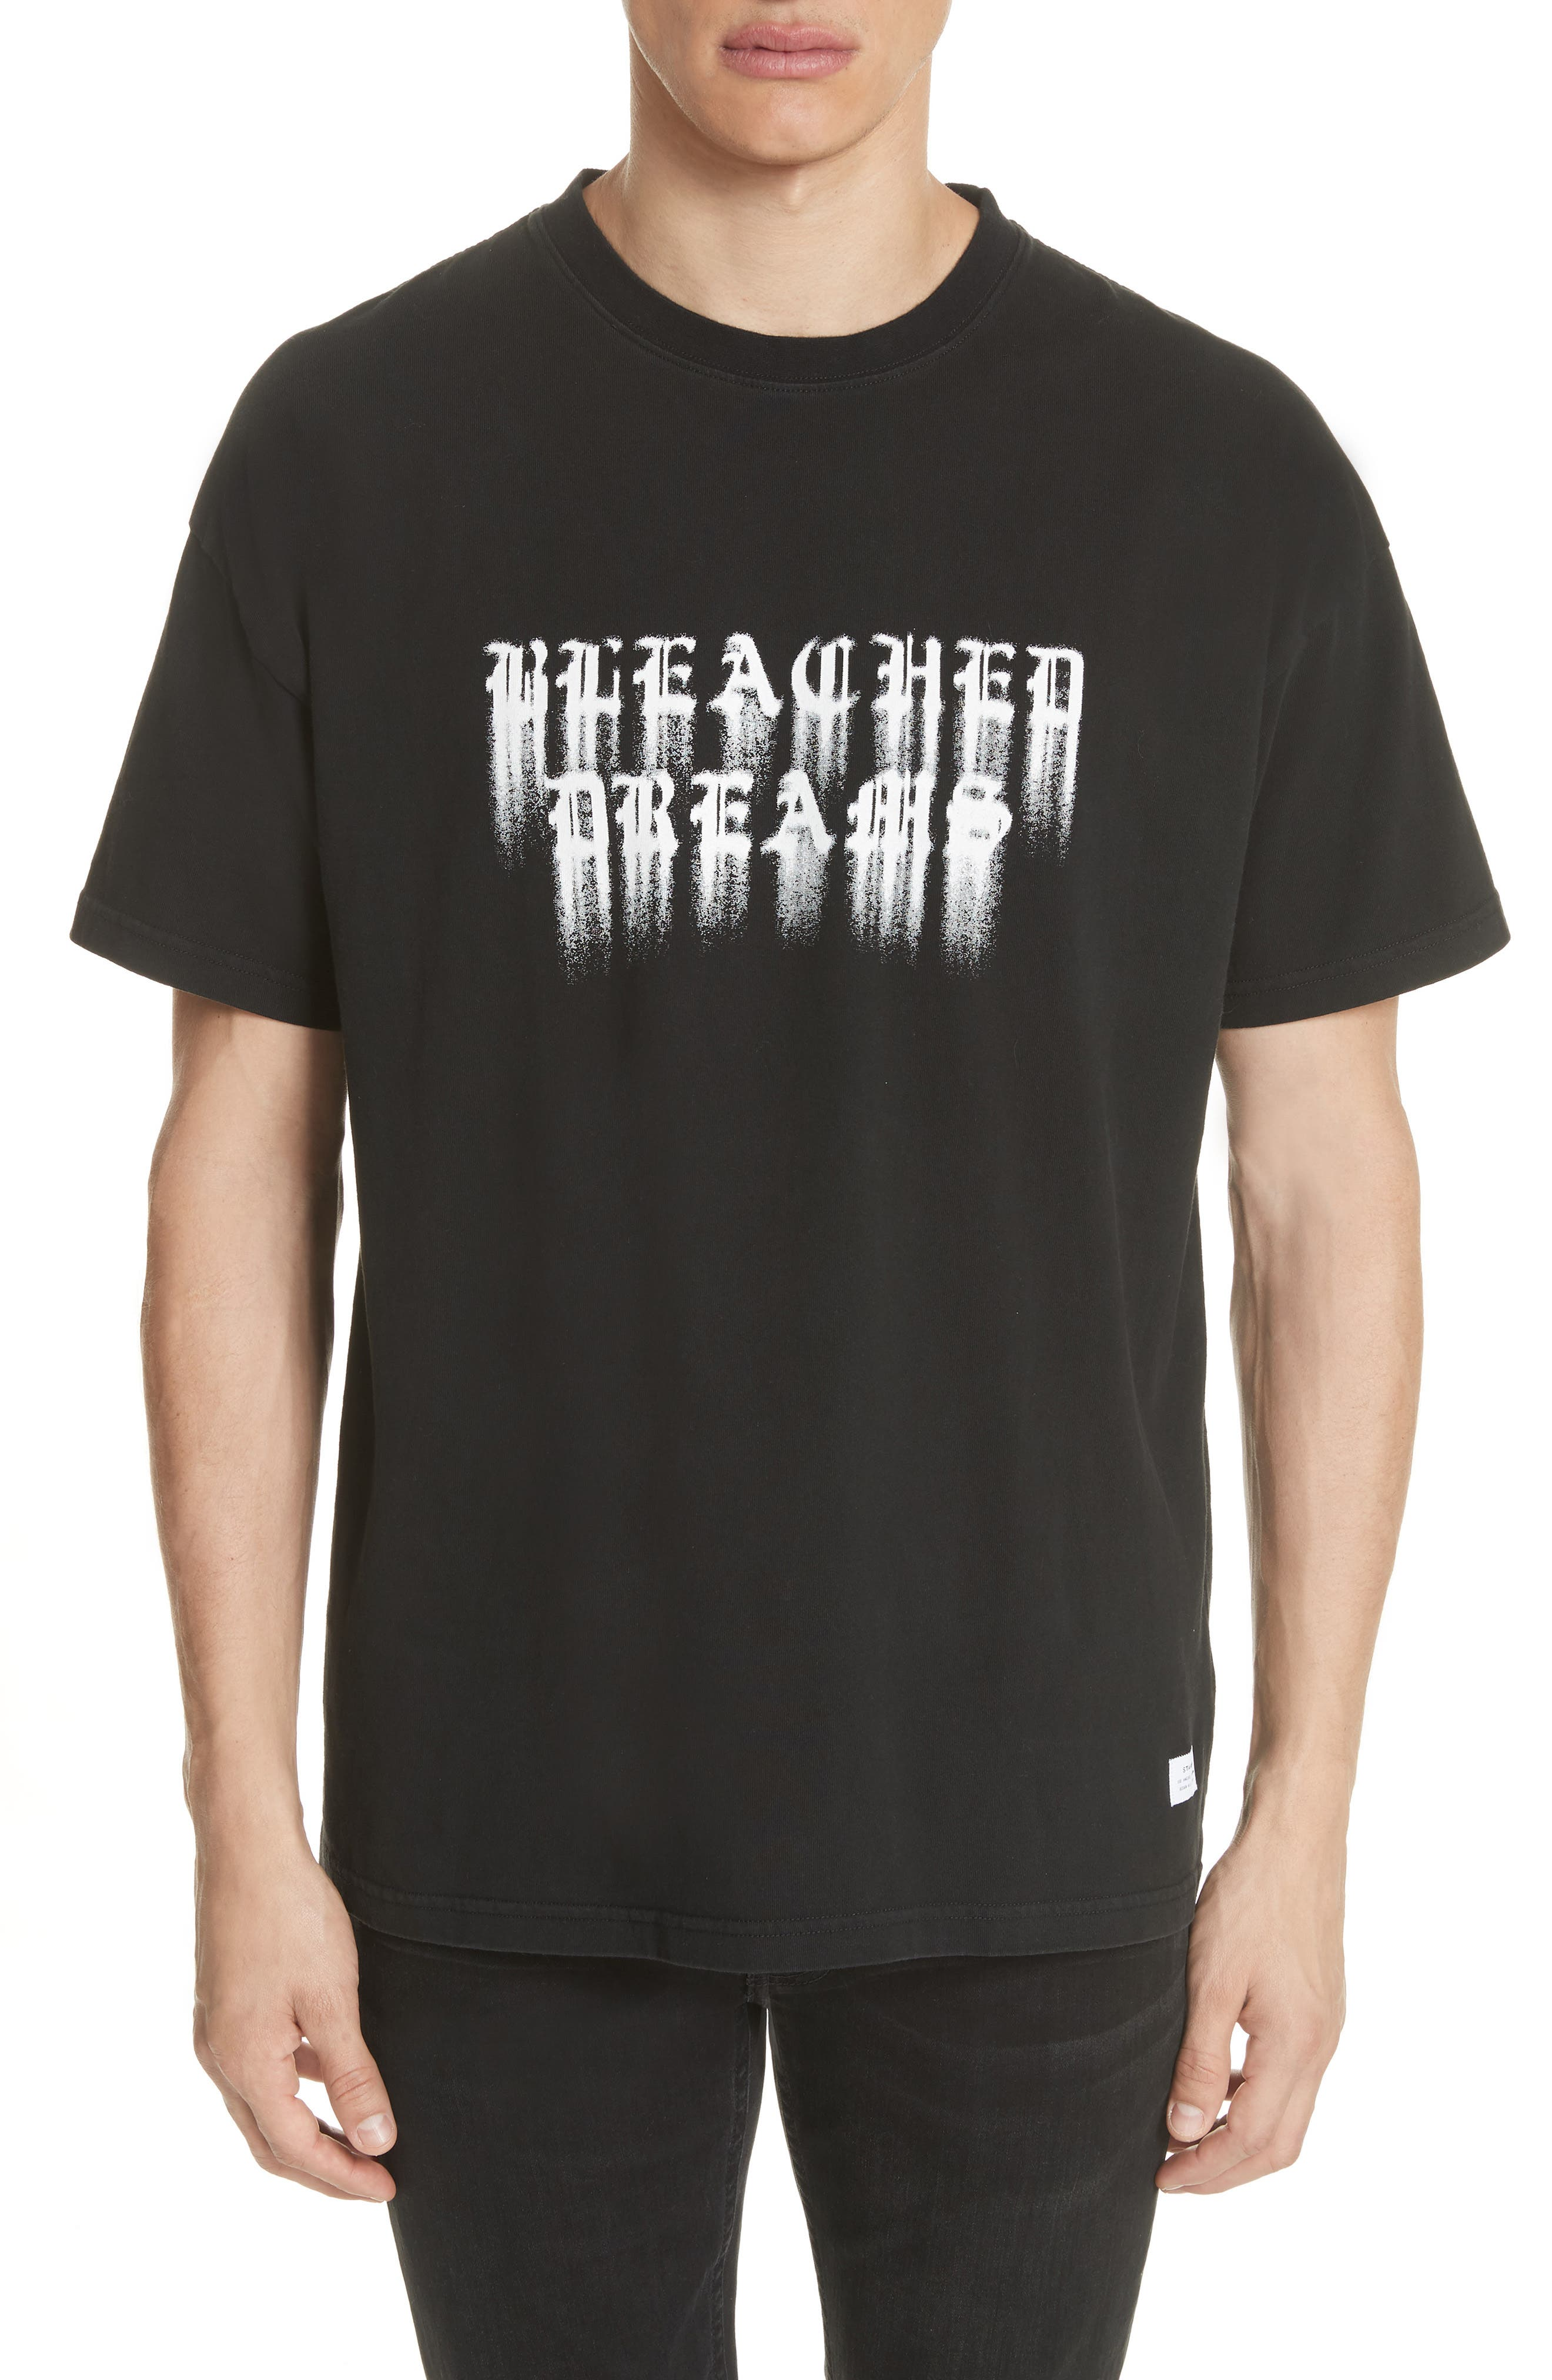 Alternate Image 1 Selected - STAMPD Bleached Dreams Graphic T-Shirt